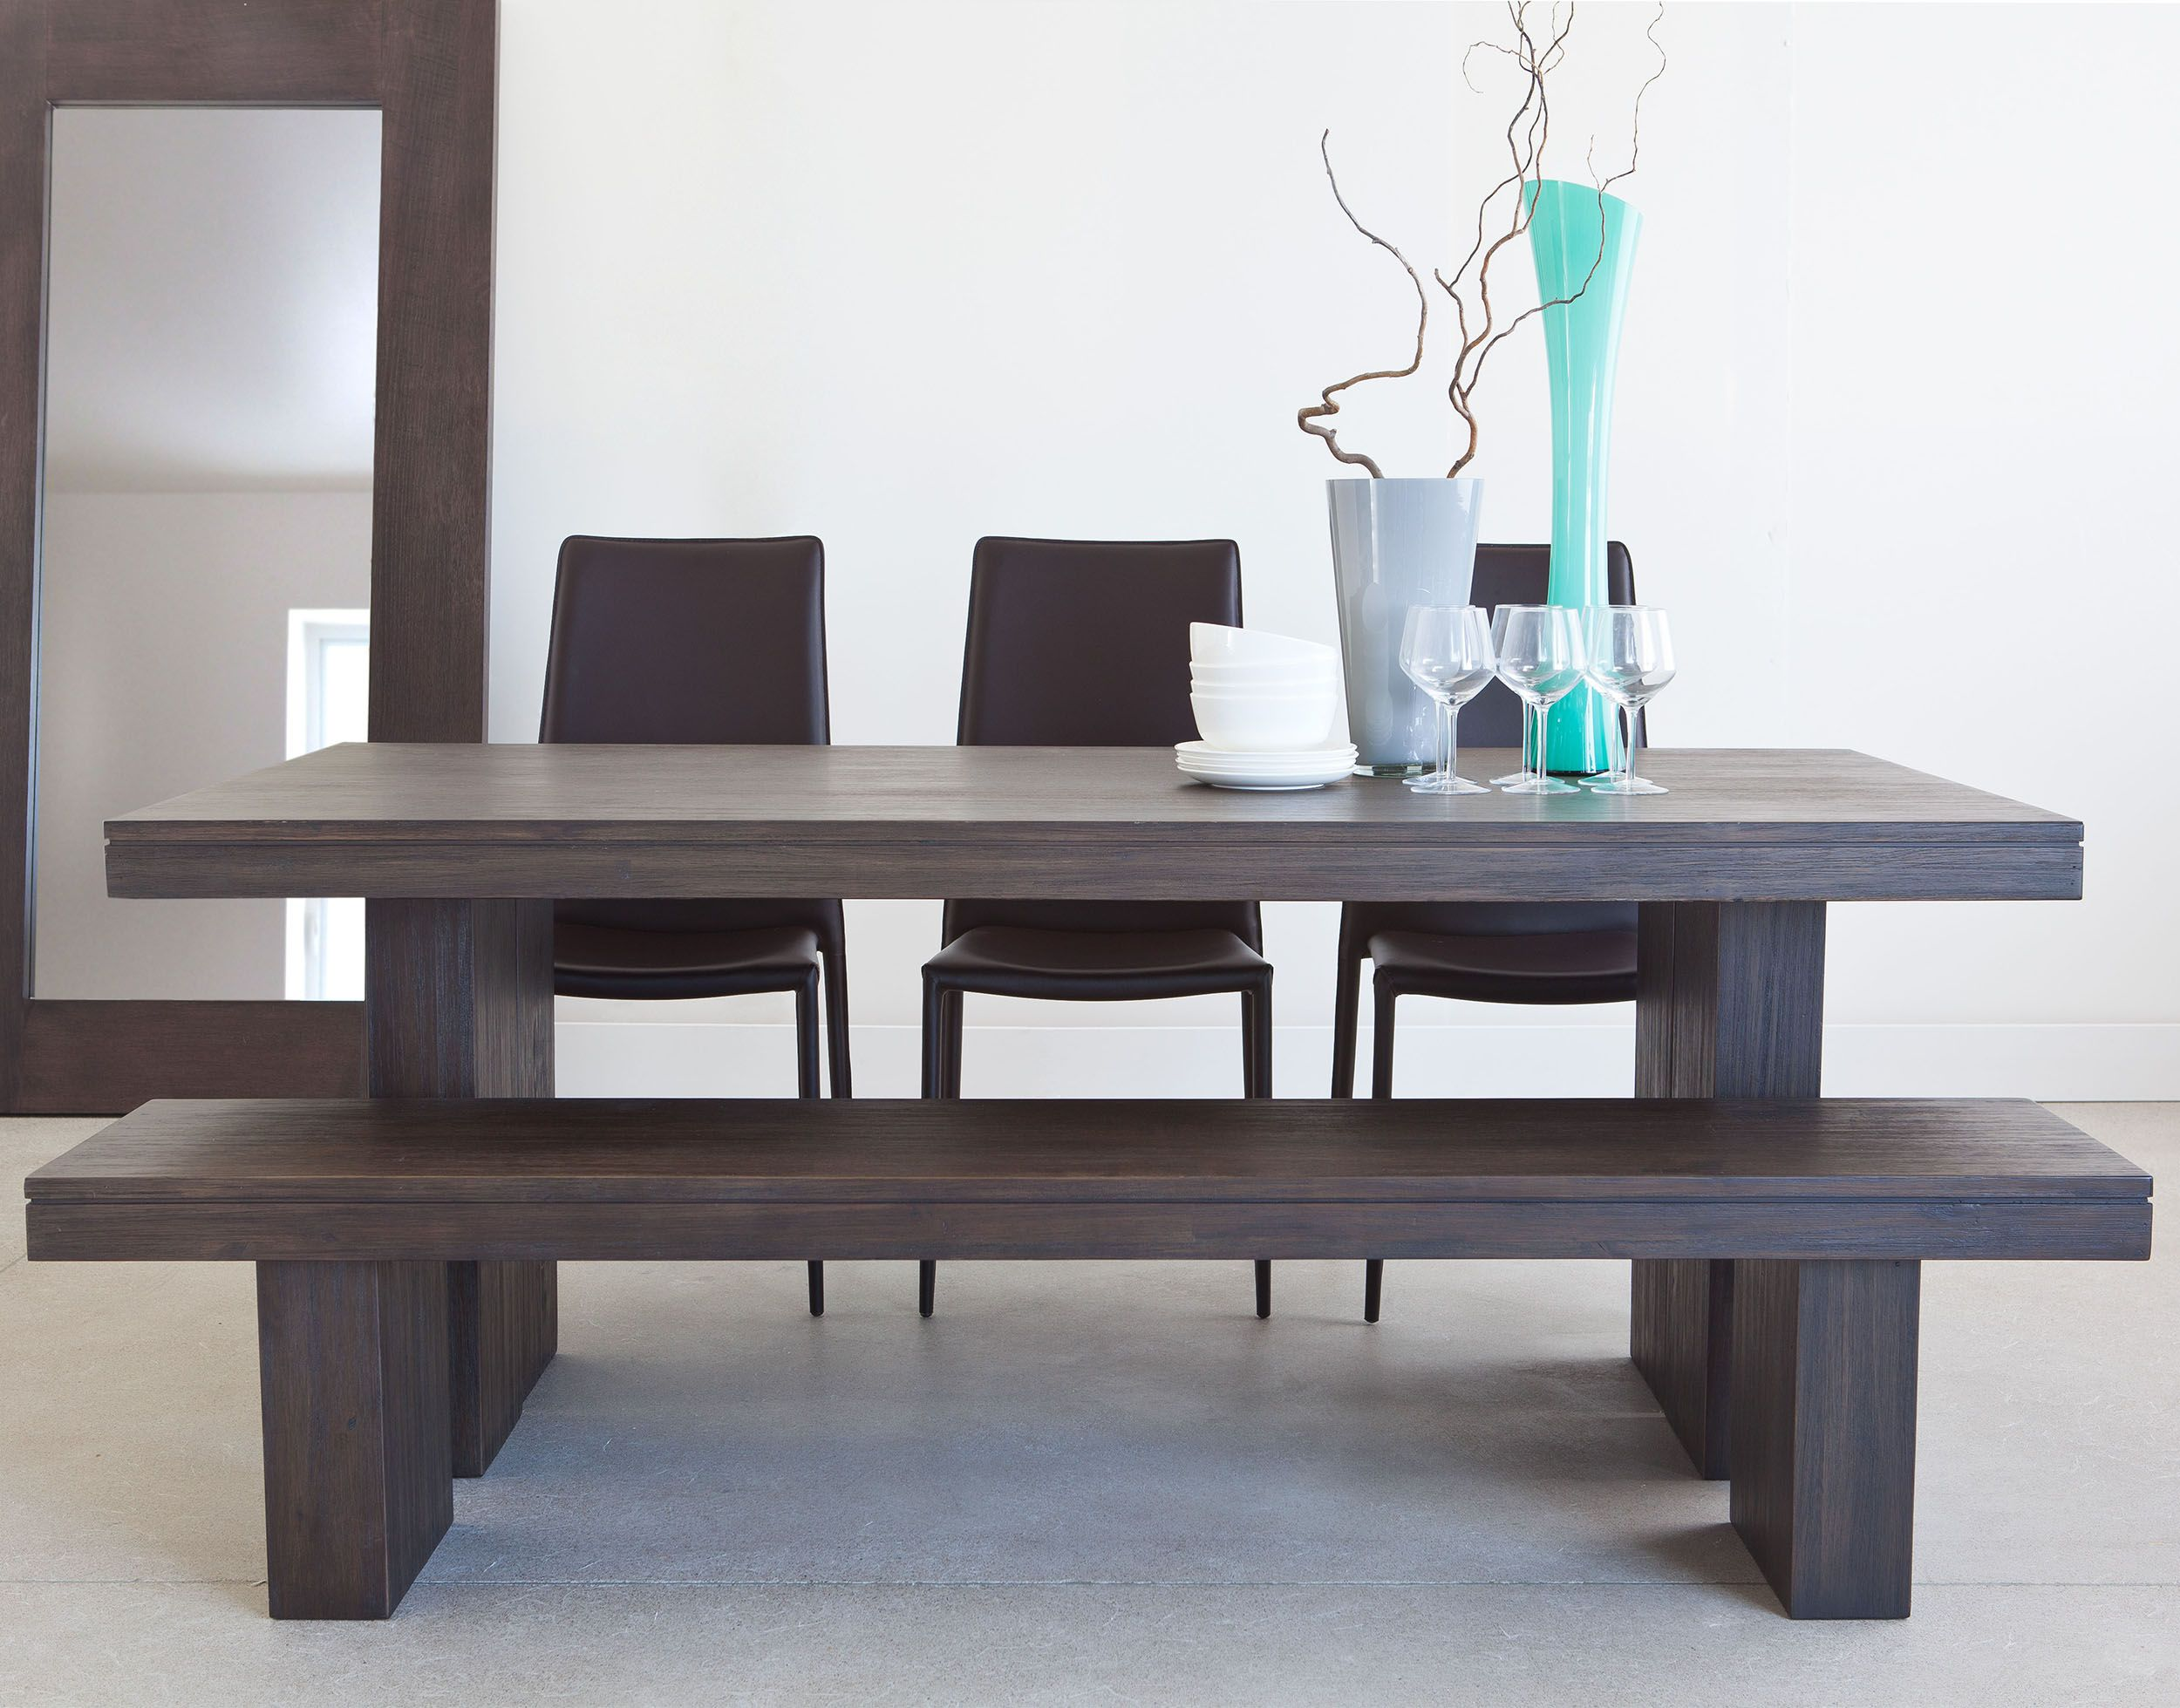 Astounding Cologne Brown Acacia Wood Dining Table 200Cm In 2019 Dailytribune Chair Design For Home Dailytribuneorg